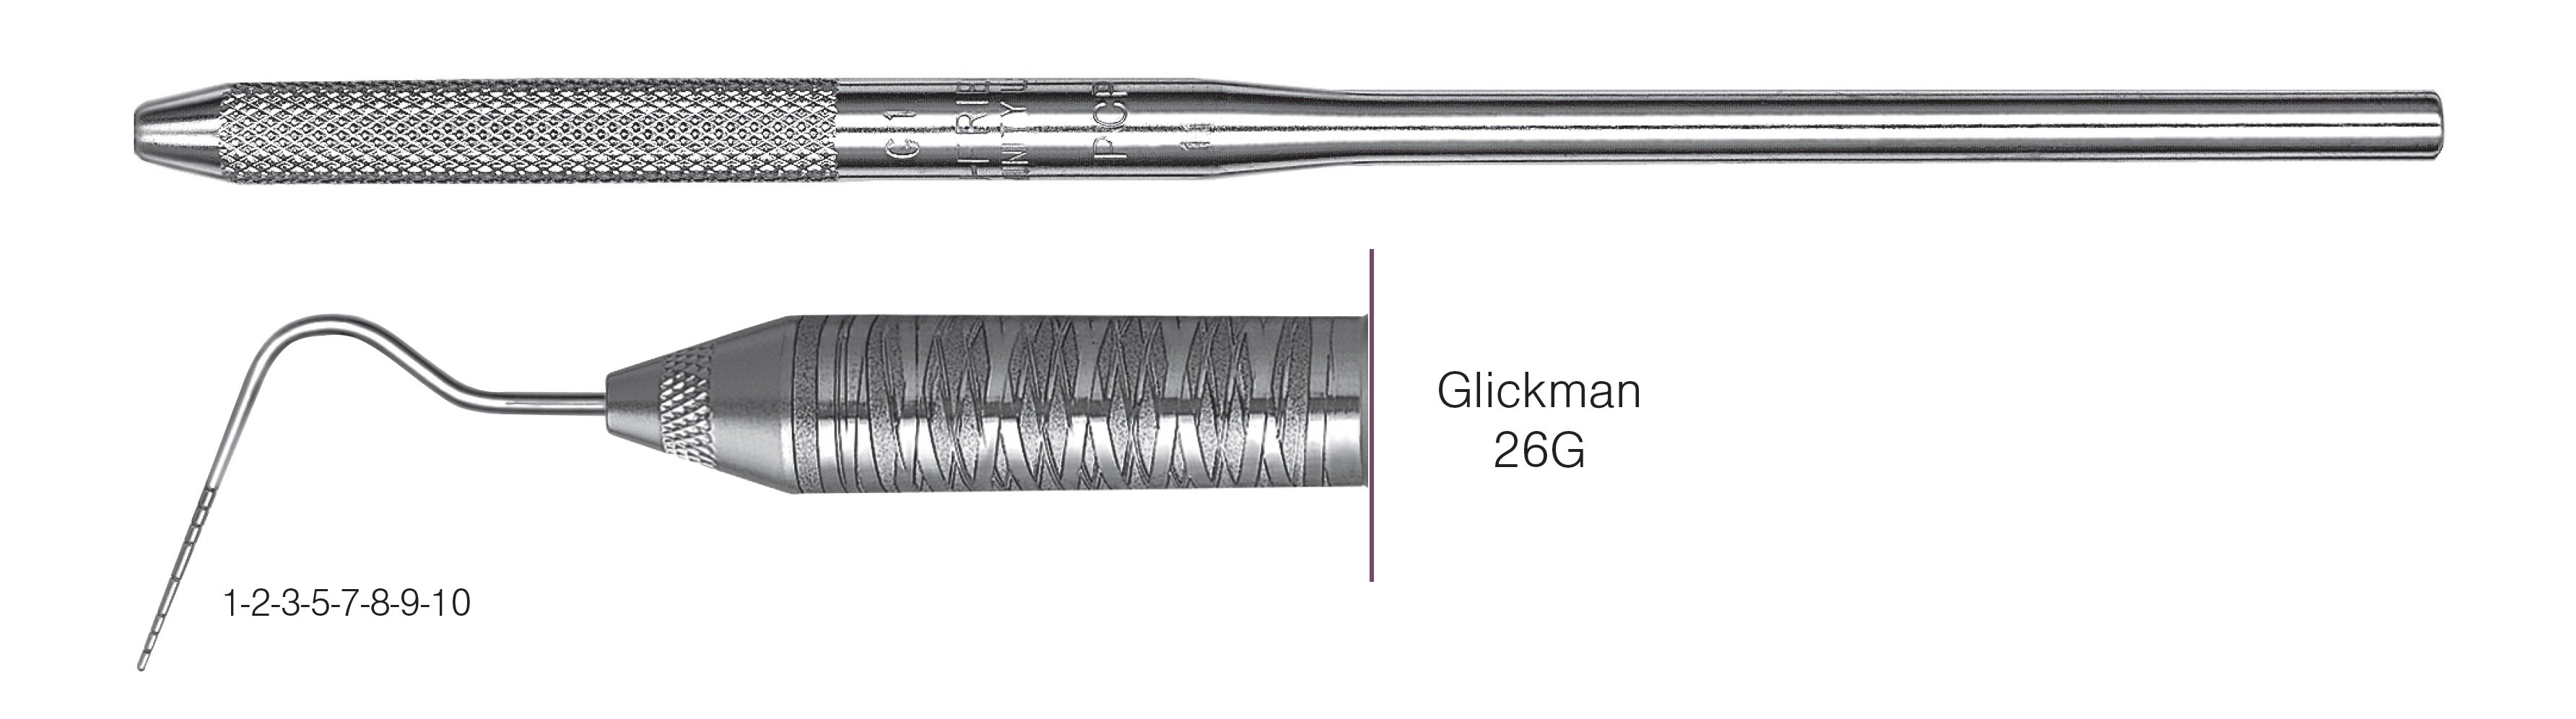 HF-P26G6-30, SINGLE-ENDED PROBES Glickman 26G, Black markings, 1-2-3-5-7-8-9-10 mm, Handle round, Single End